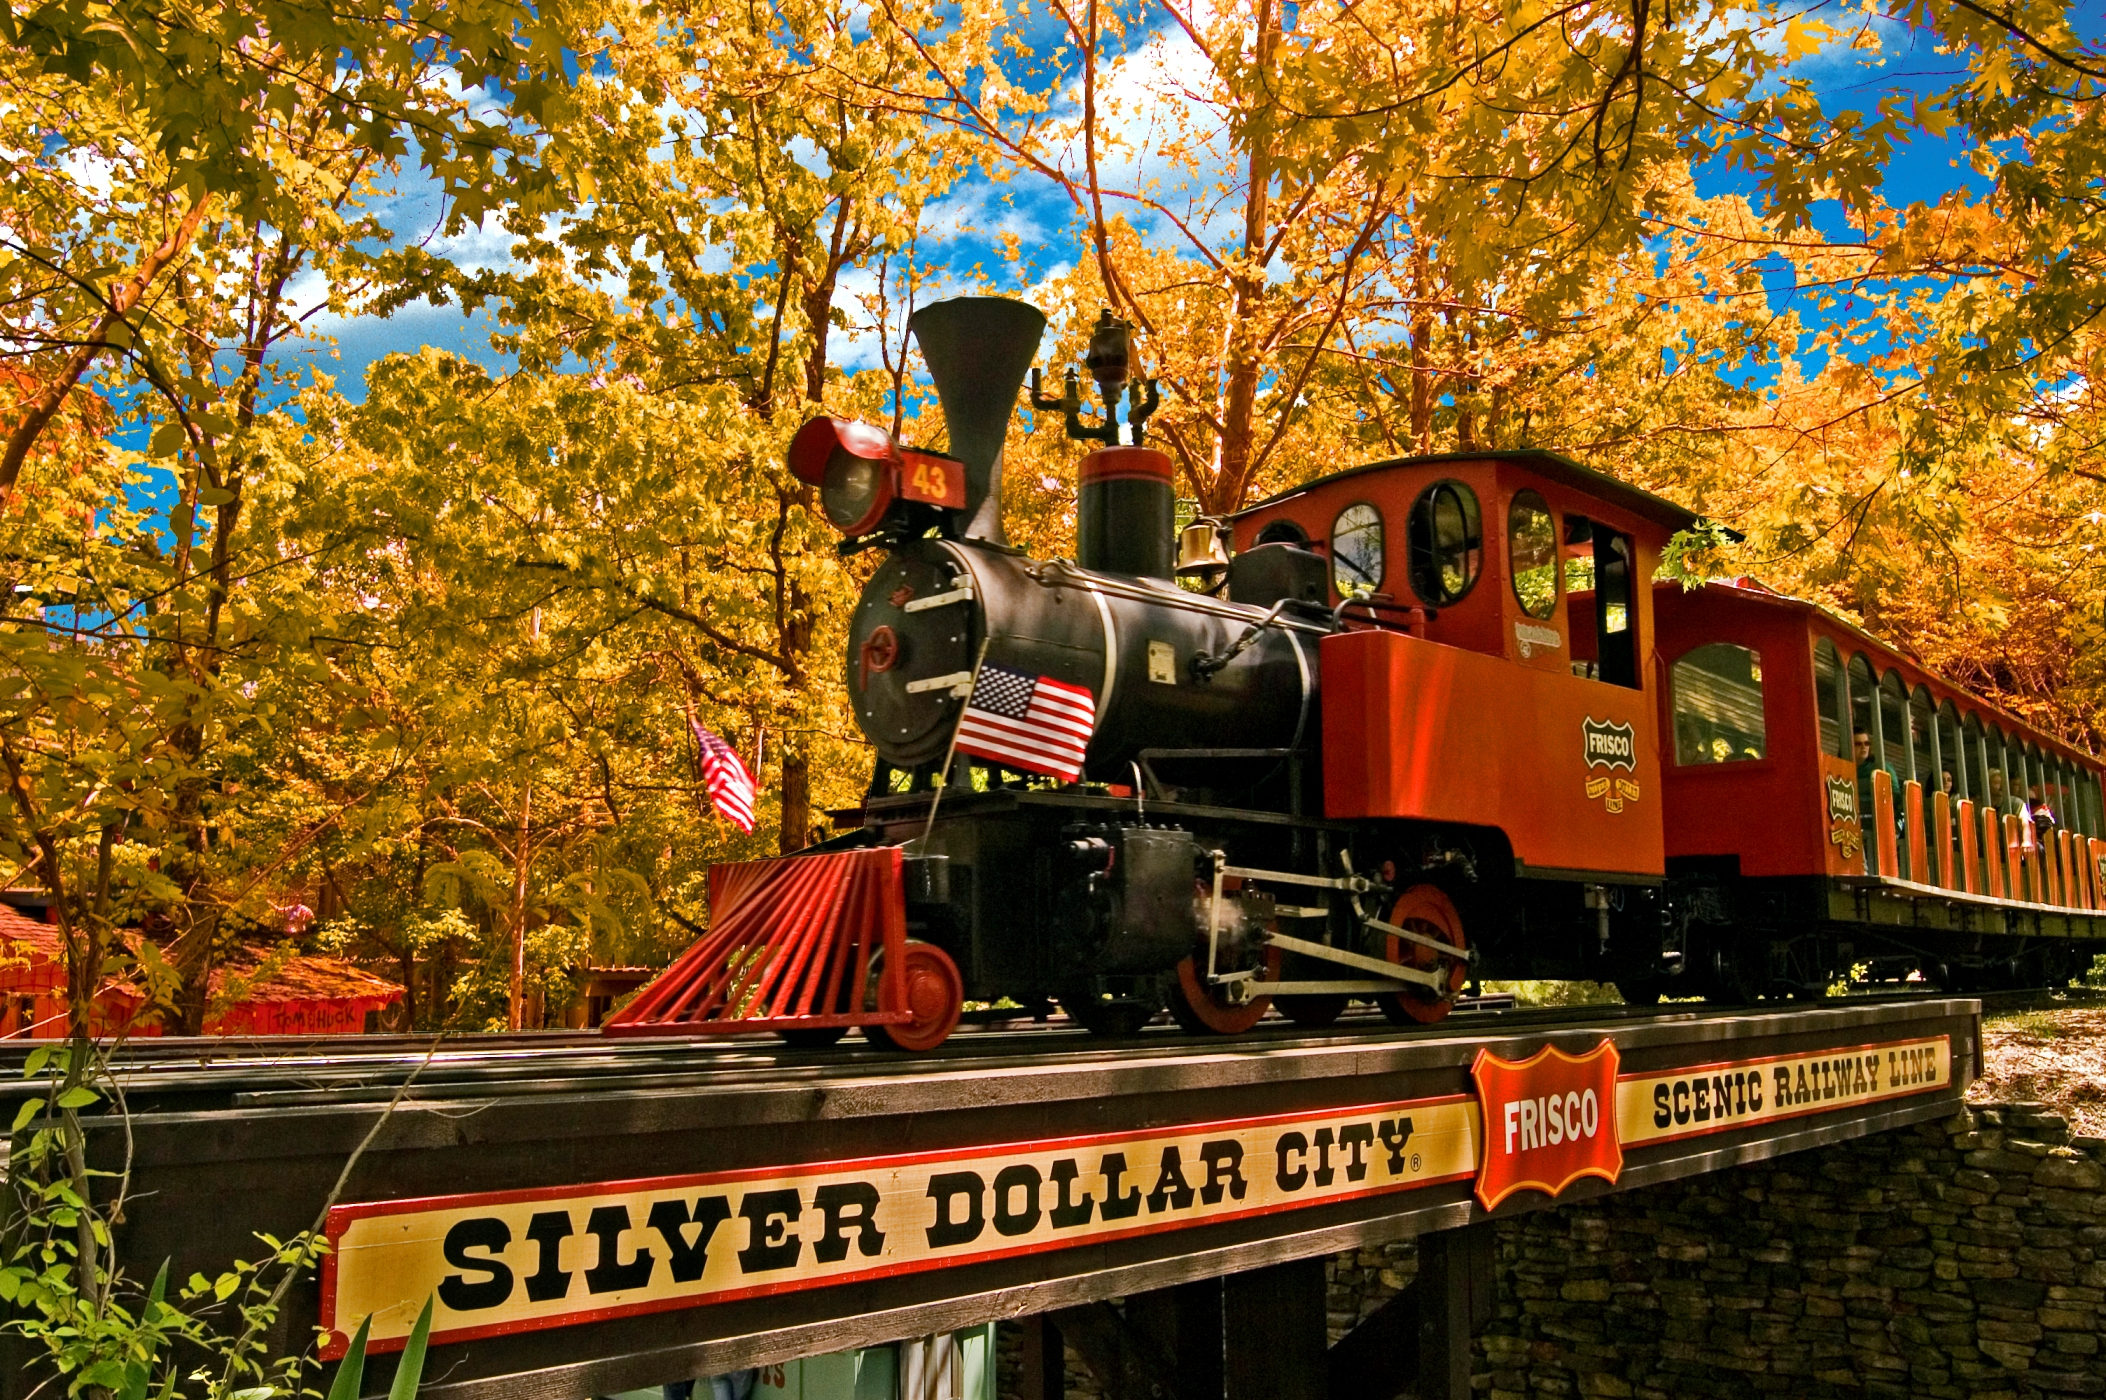 Silver Dollar City Presents Fall S Best Of The Classic